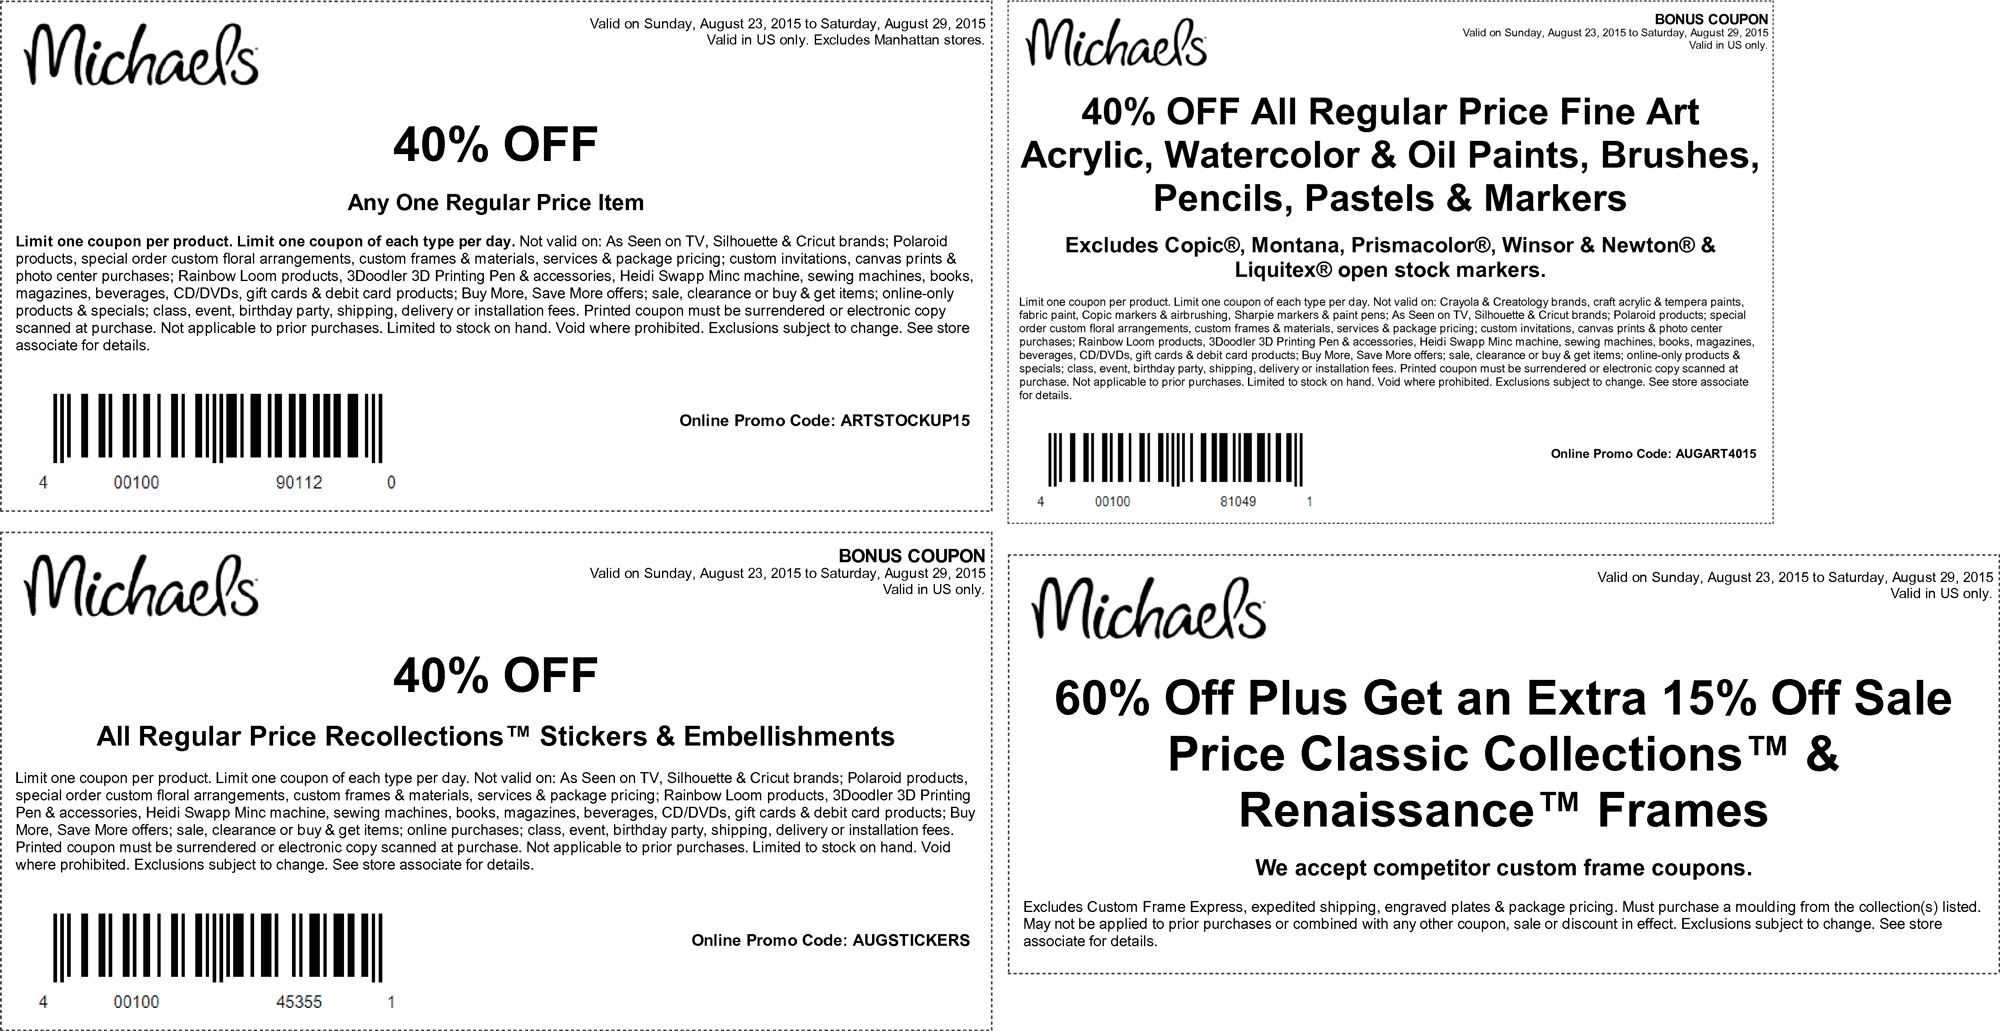 Michaels Coupon January 2017 40% off a single item & more at Michaels, or online via promo code ARTSTOCKUP15